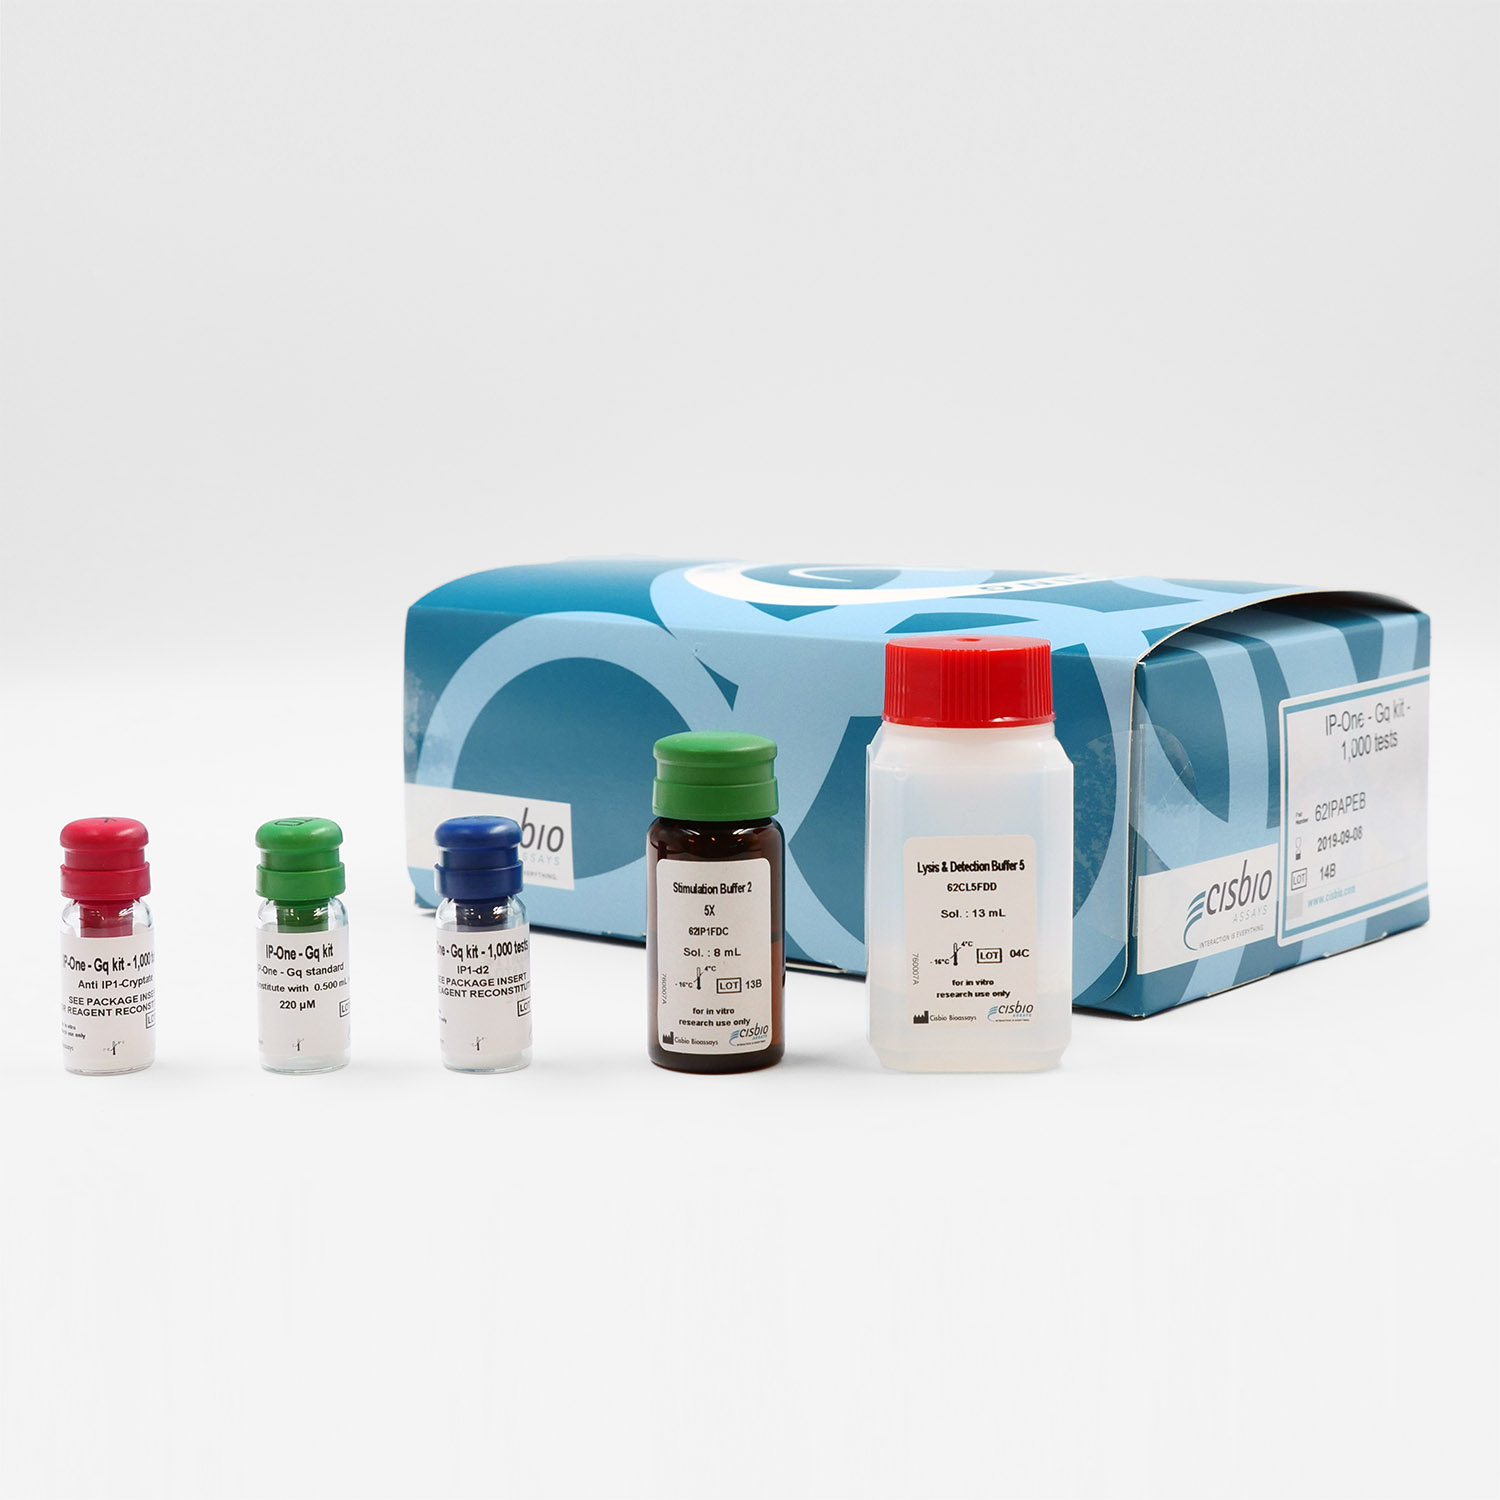 Photography of IP-One Gq assay kit and components